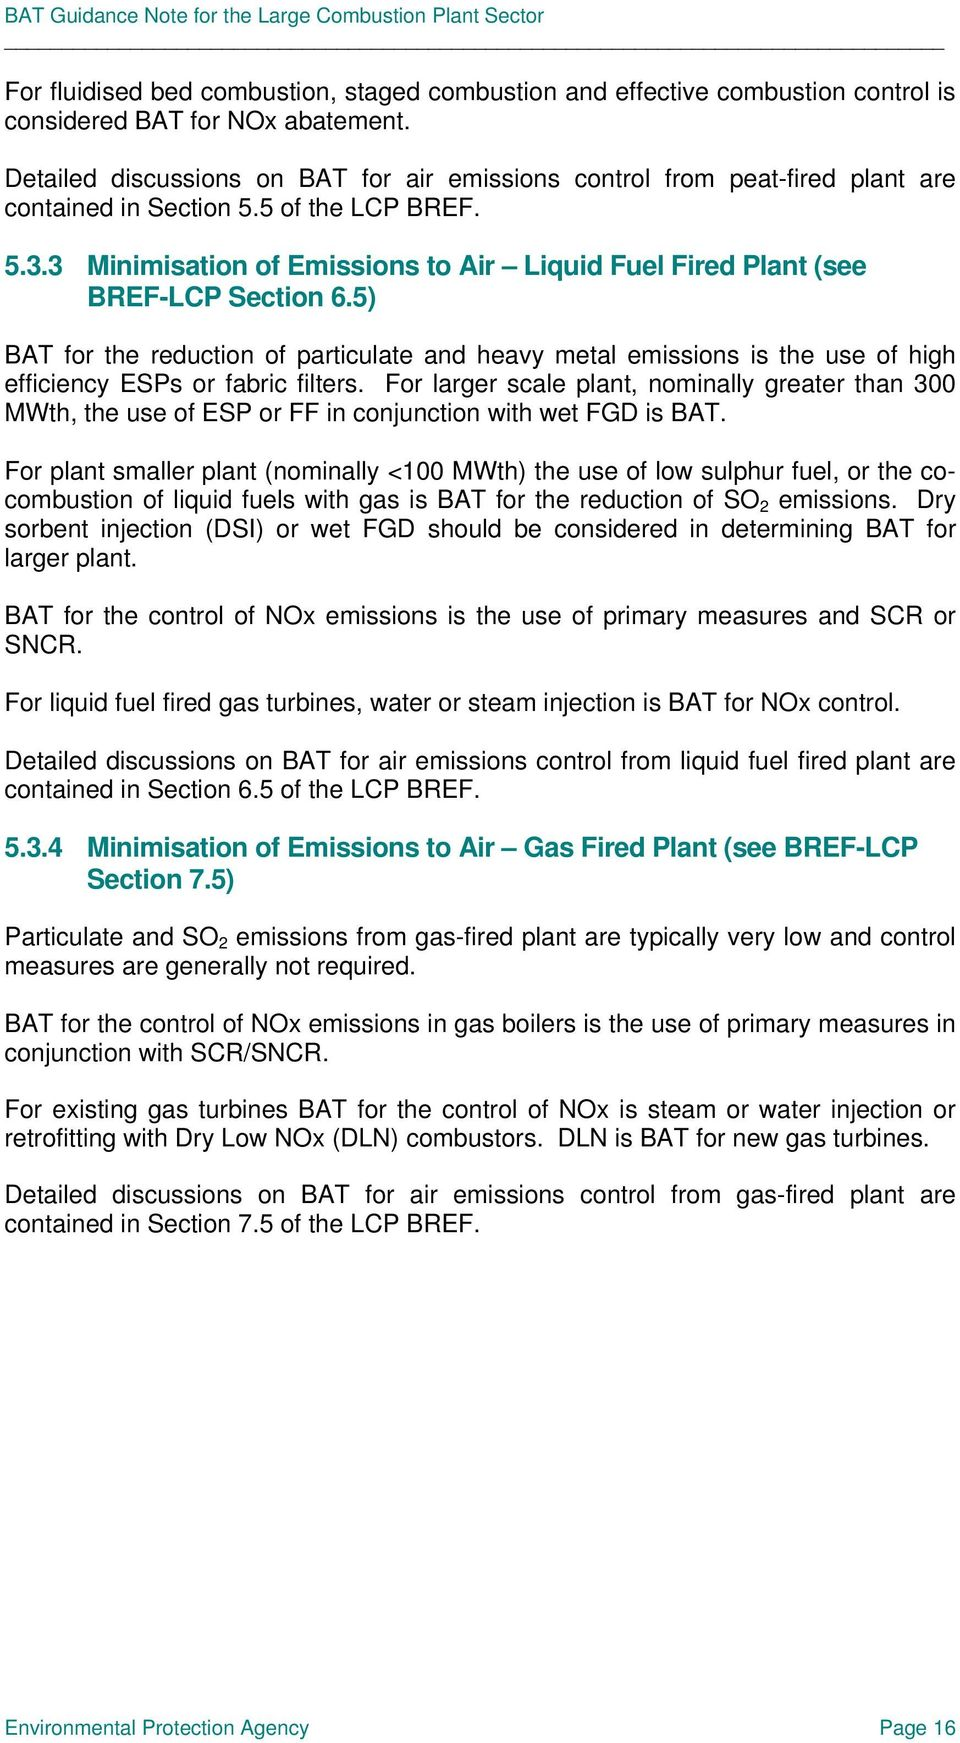 3 Minimisation of Emissions to Air Liquid Fuel Fired Plant (see BREF-LCP Section 6.